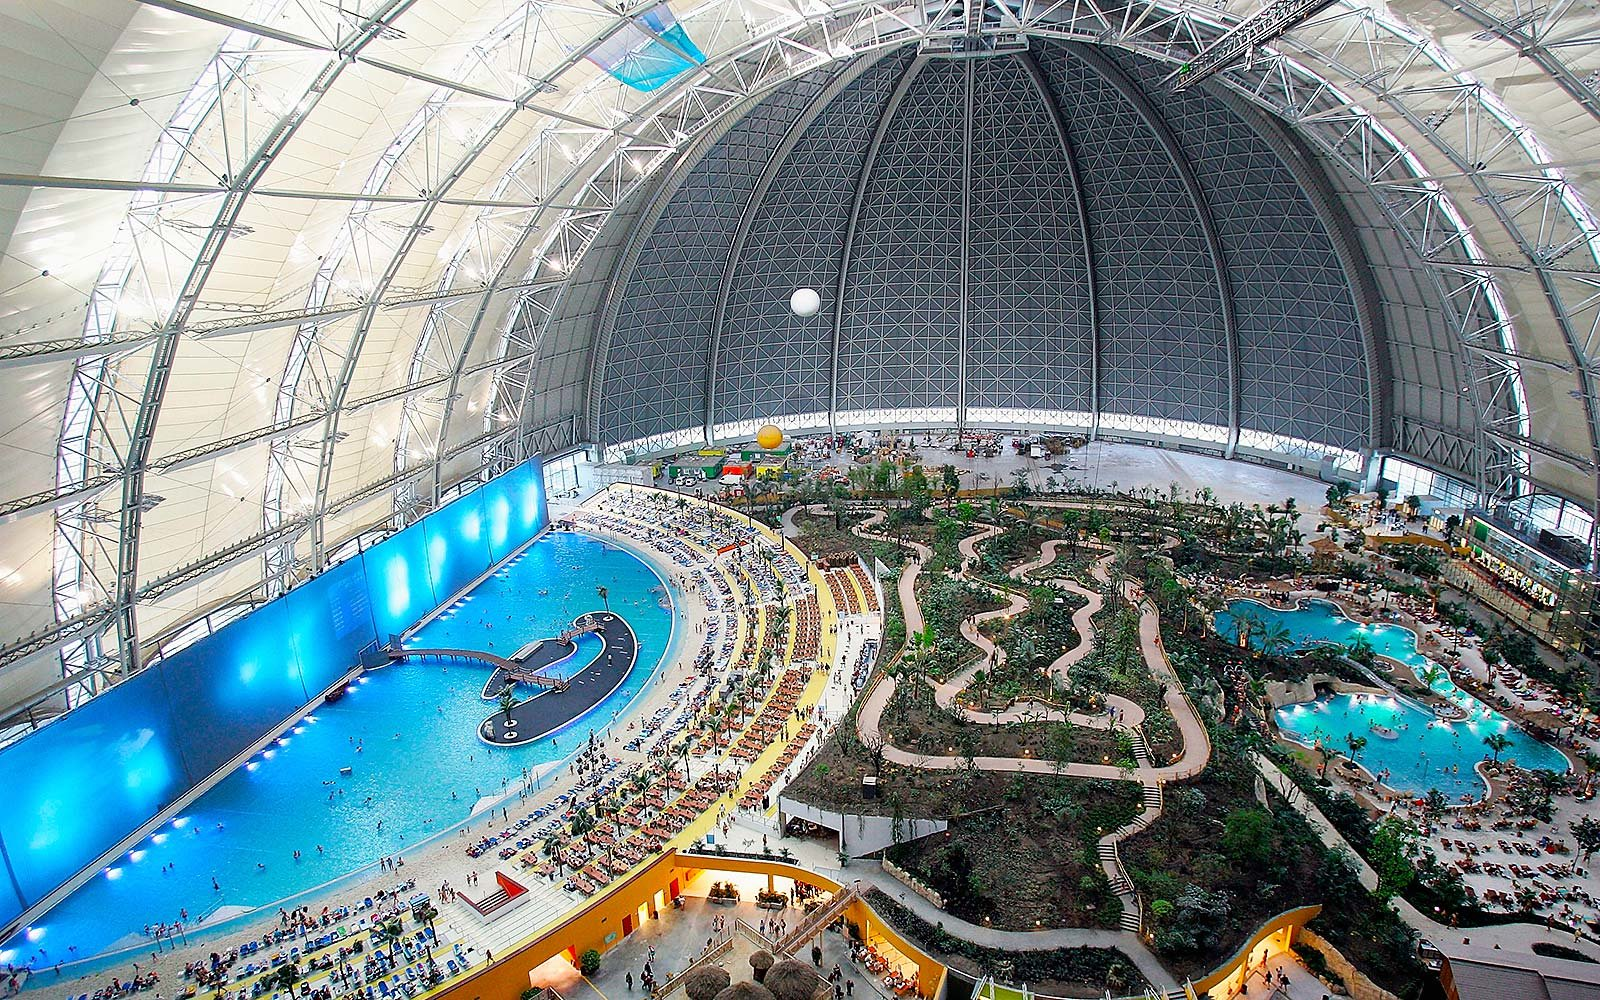 The largest water park in the world 70